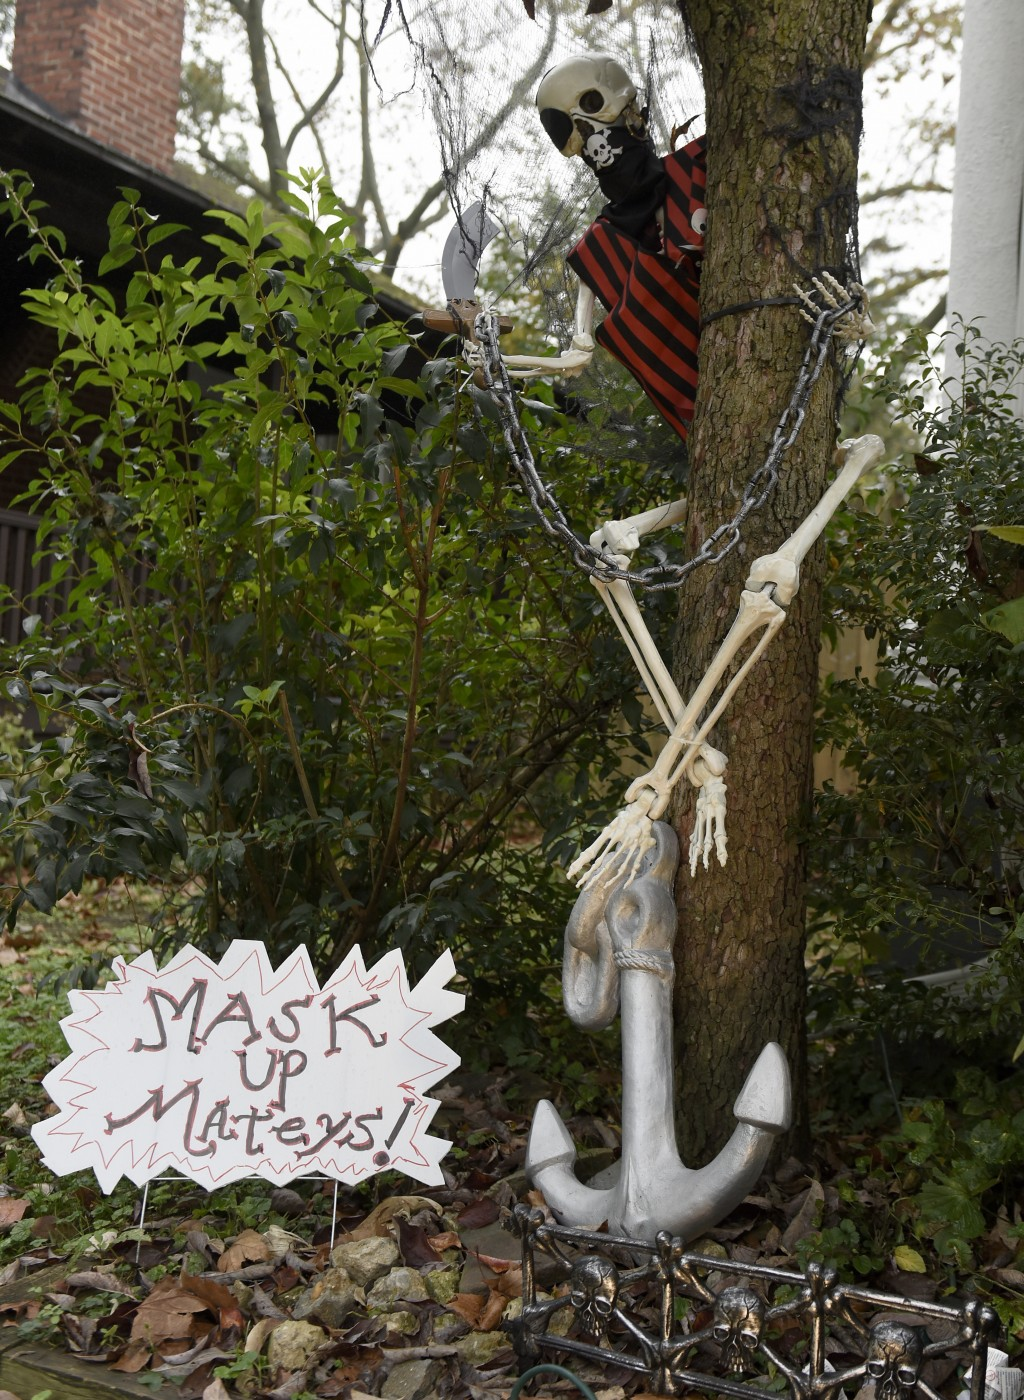 Pirate-themed Halloween decorations are seen at the home of Carol McCarthy, reminding people to be safe while trick-or-treating during the COVID-19 pa...